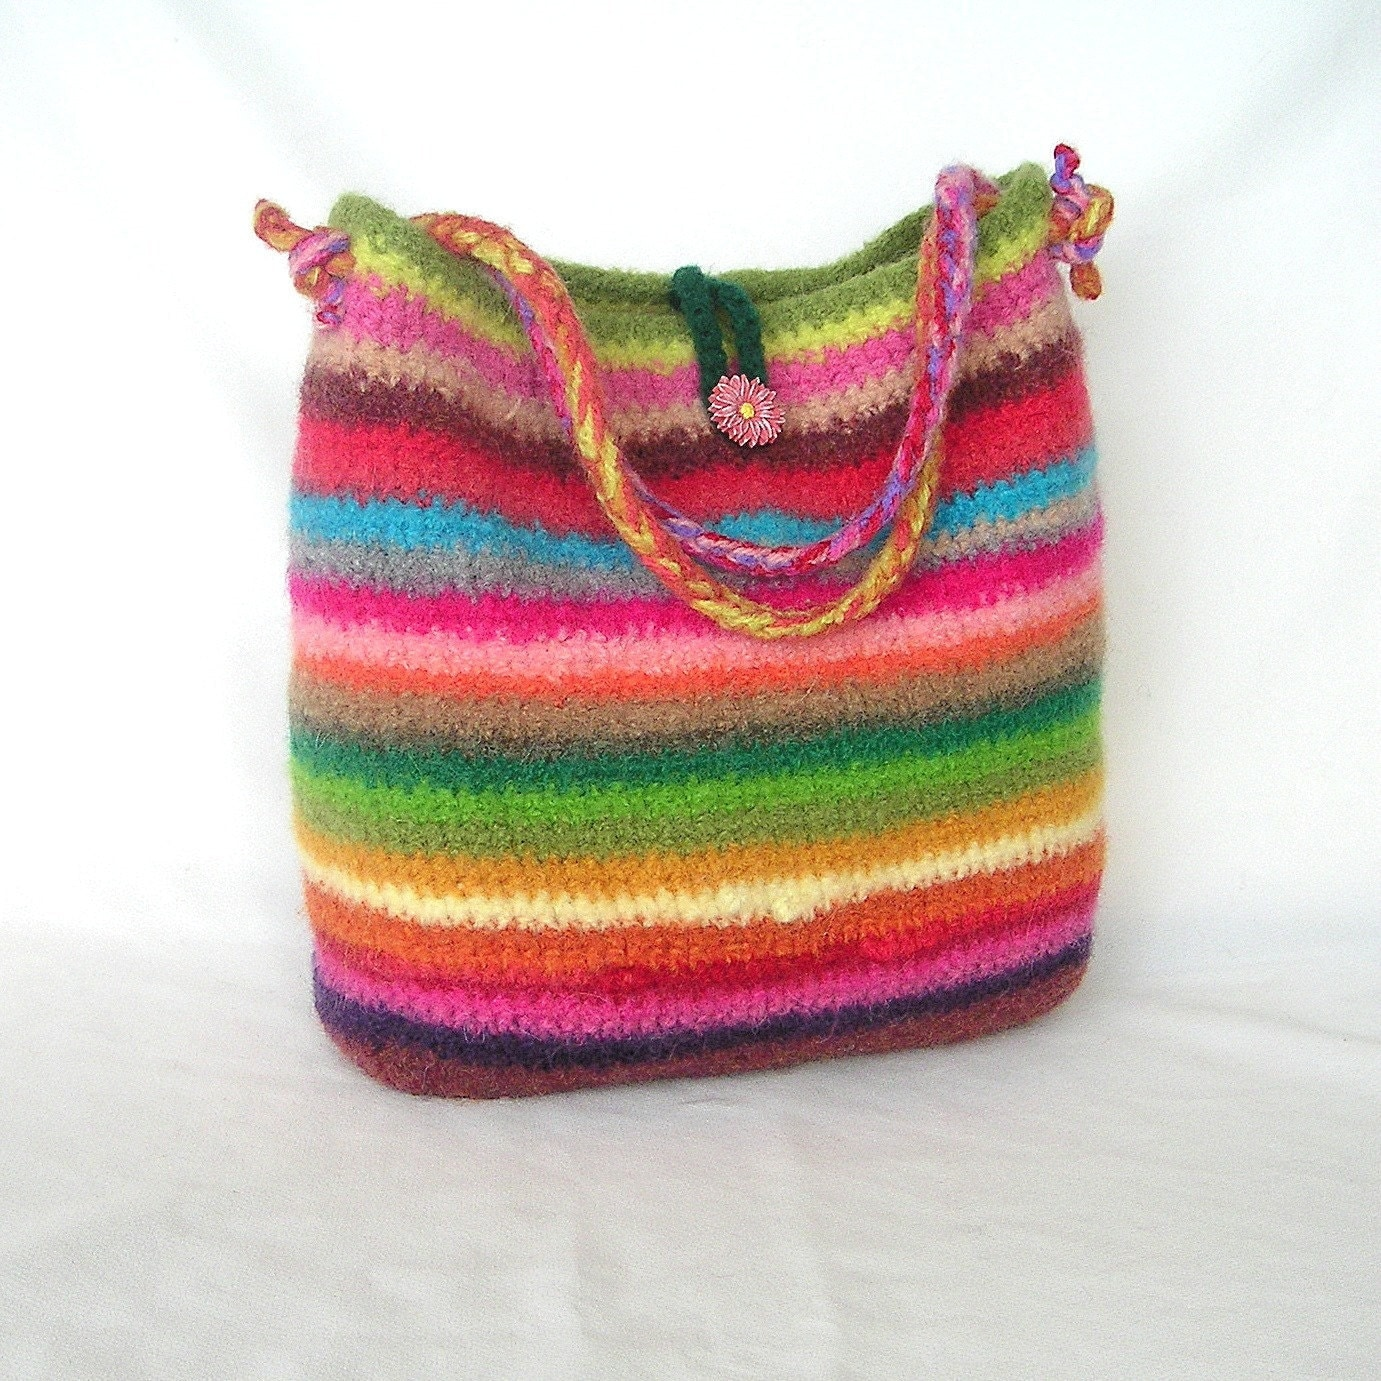 Crochet Felted Tote Bag Pattern : Rainbow Felted Bag Crochet Pattern by GraceKnittingPattern ...